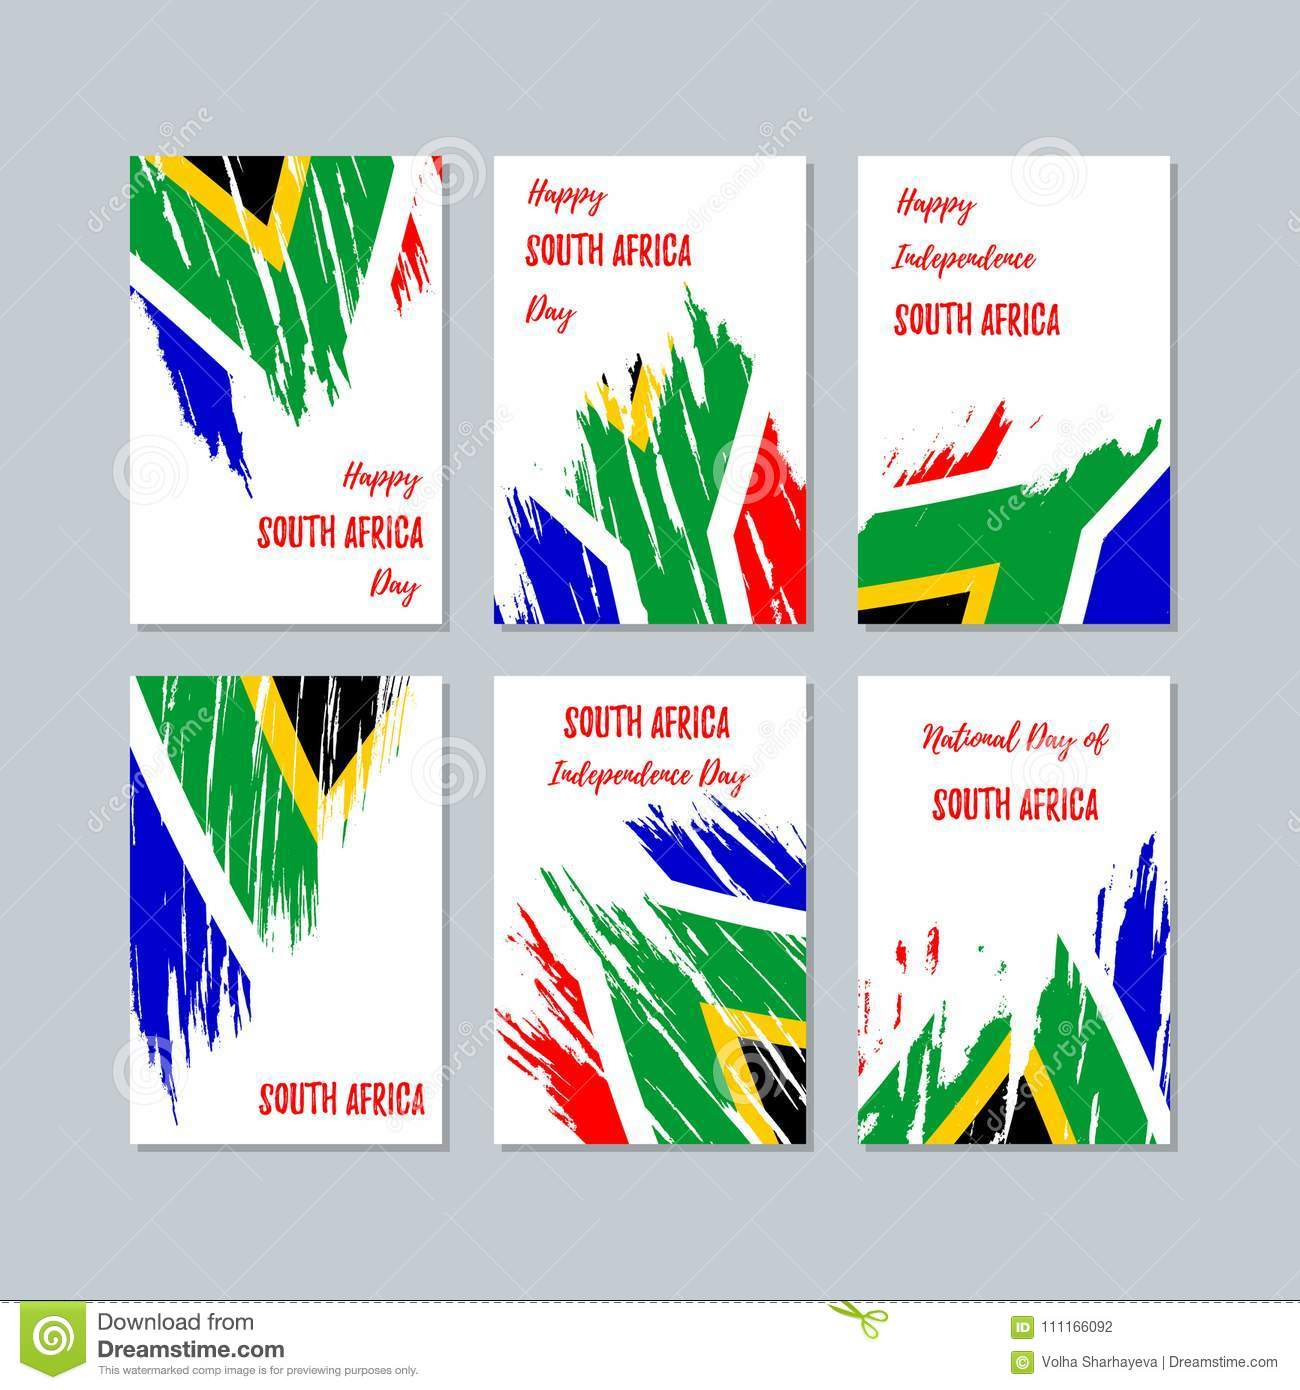 South africa patriotic cards for national day stock vector download south africa patriotic cards for national day stock vector illustration of citizen m4hsunfo